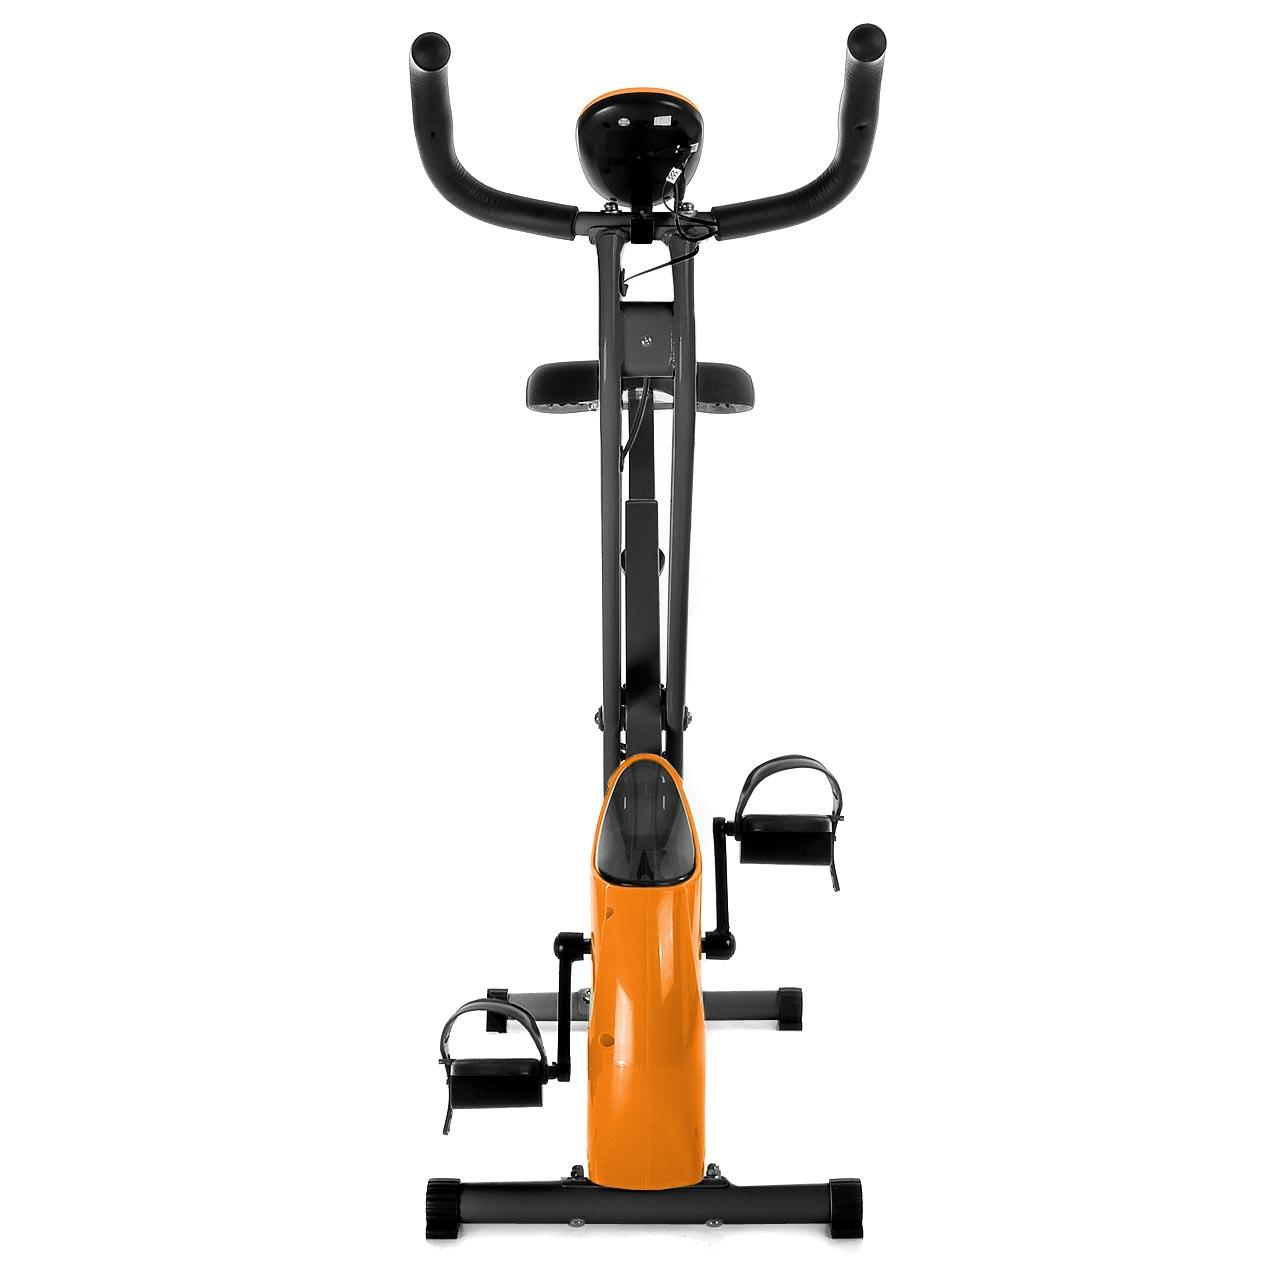 fitnessger t ergometer trimmrad fahrrad x bike cardio klappbar heimtrainer ebay. Black Bedroom Furniture Sets. Home Design Ideas